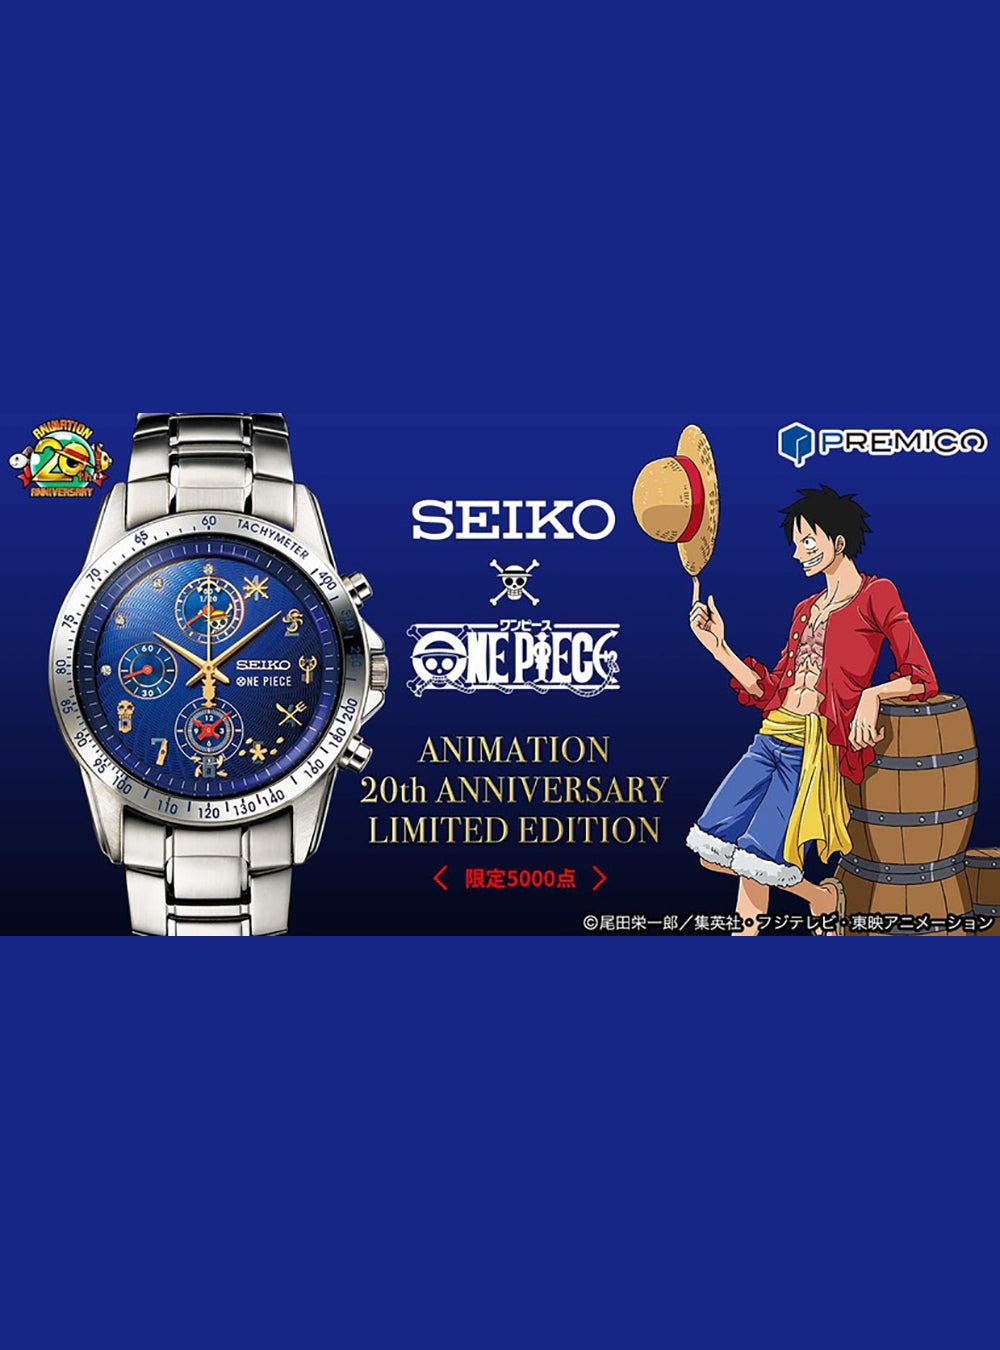 SEIKO×ONE PIECE ANIMATION 20th ANNIVERSARY LIMITED EDITION MADE IN JAPAN JDM (Japanese Domestic Market)